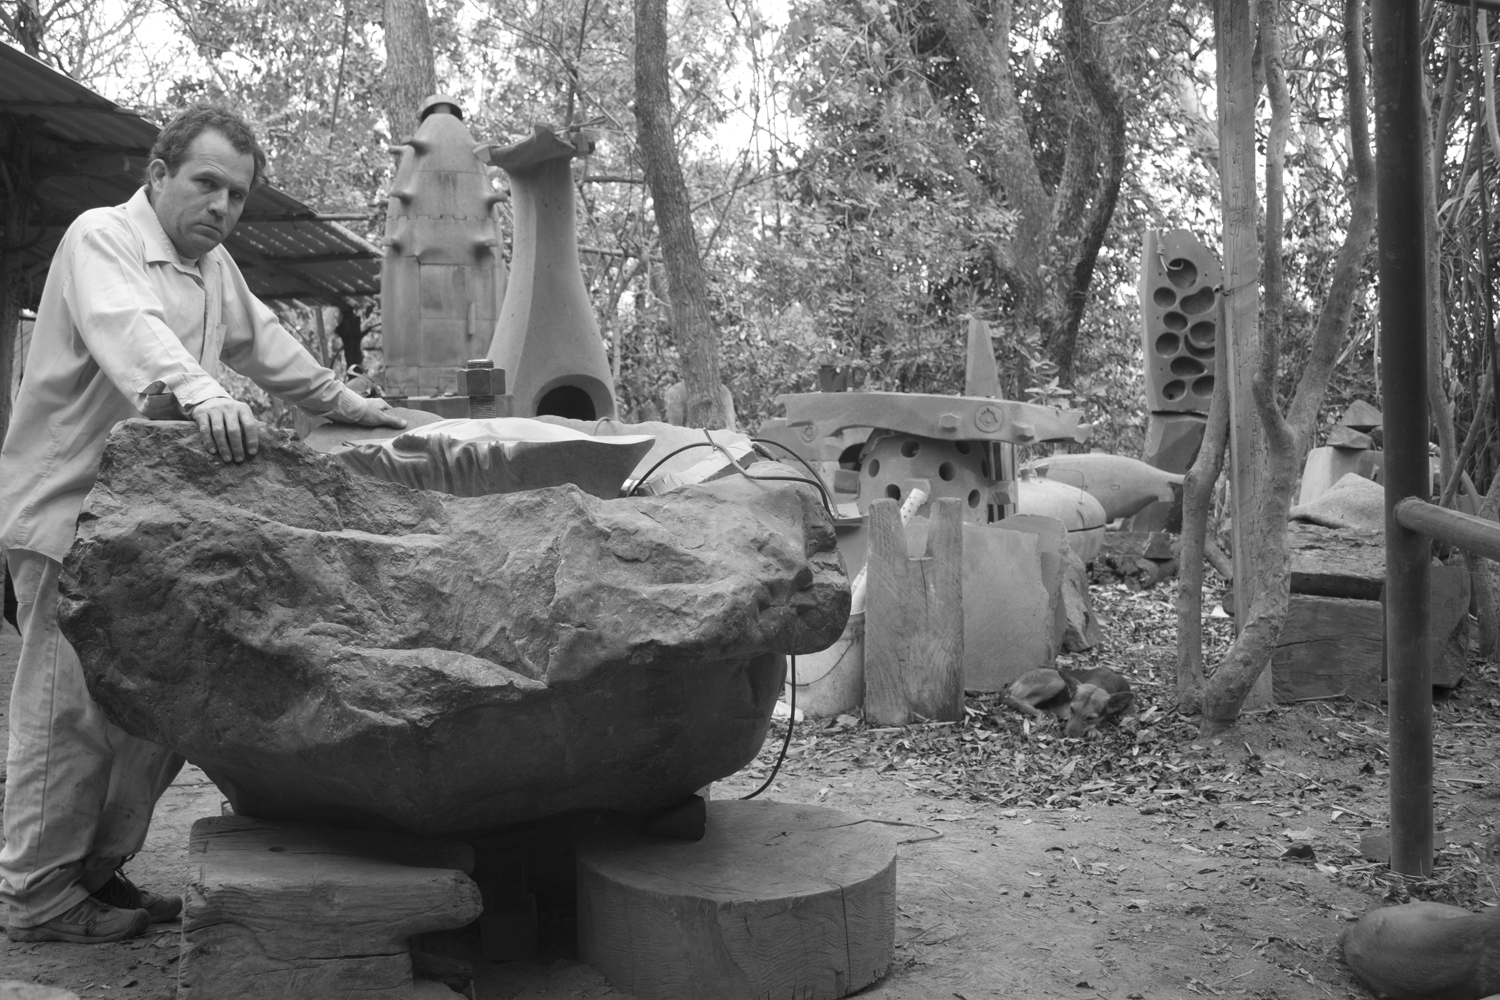 JULIO MARTINEZ BARNETCHE in the outdoor section of his 'jungle' workshop. With finished and semi-finished sculptures and stones ready to be carved into sculptures.